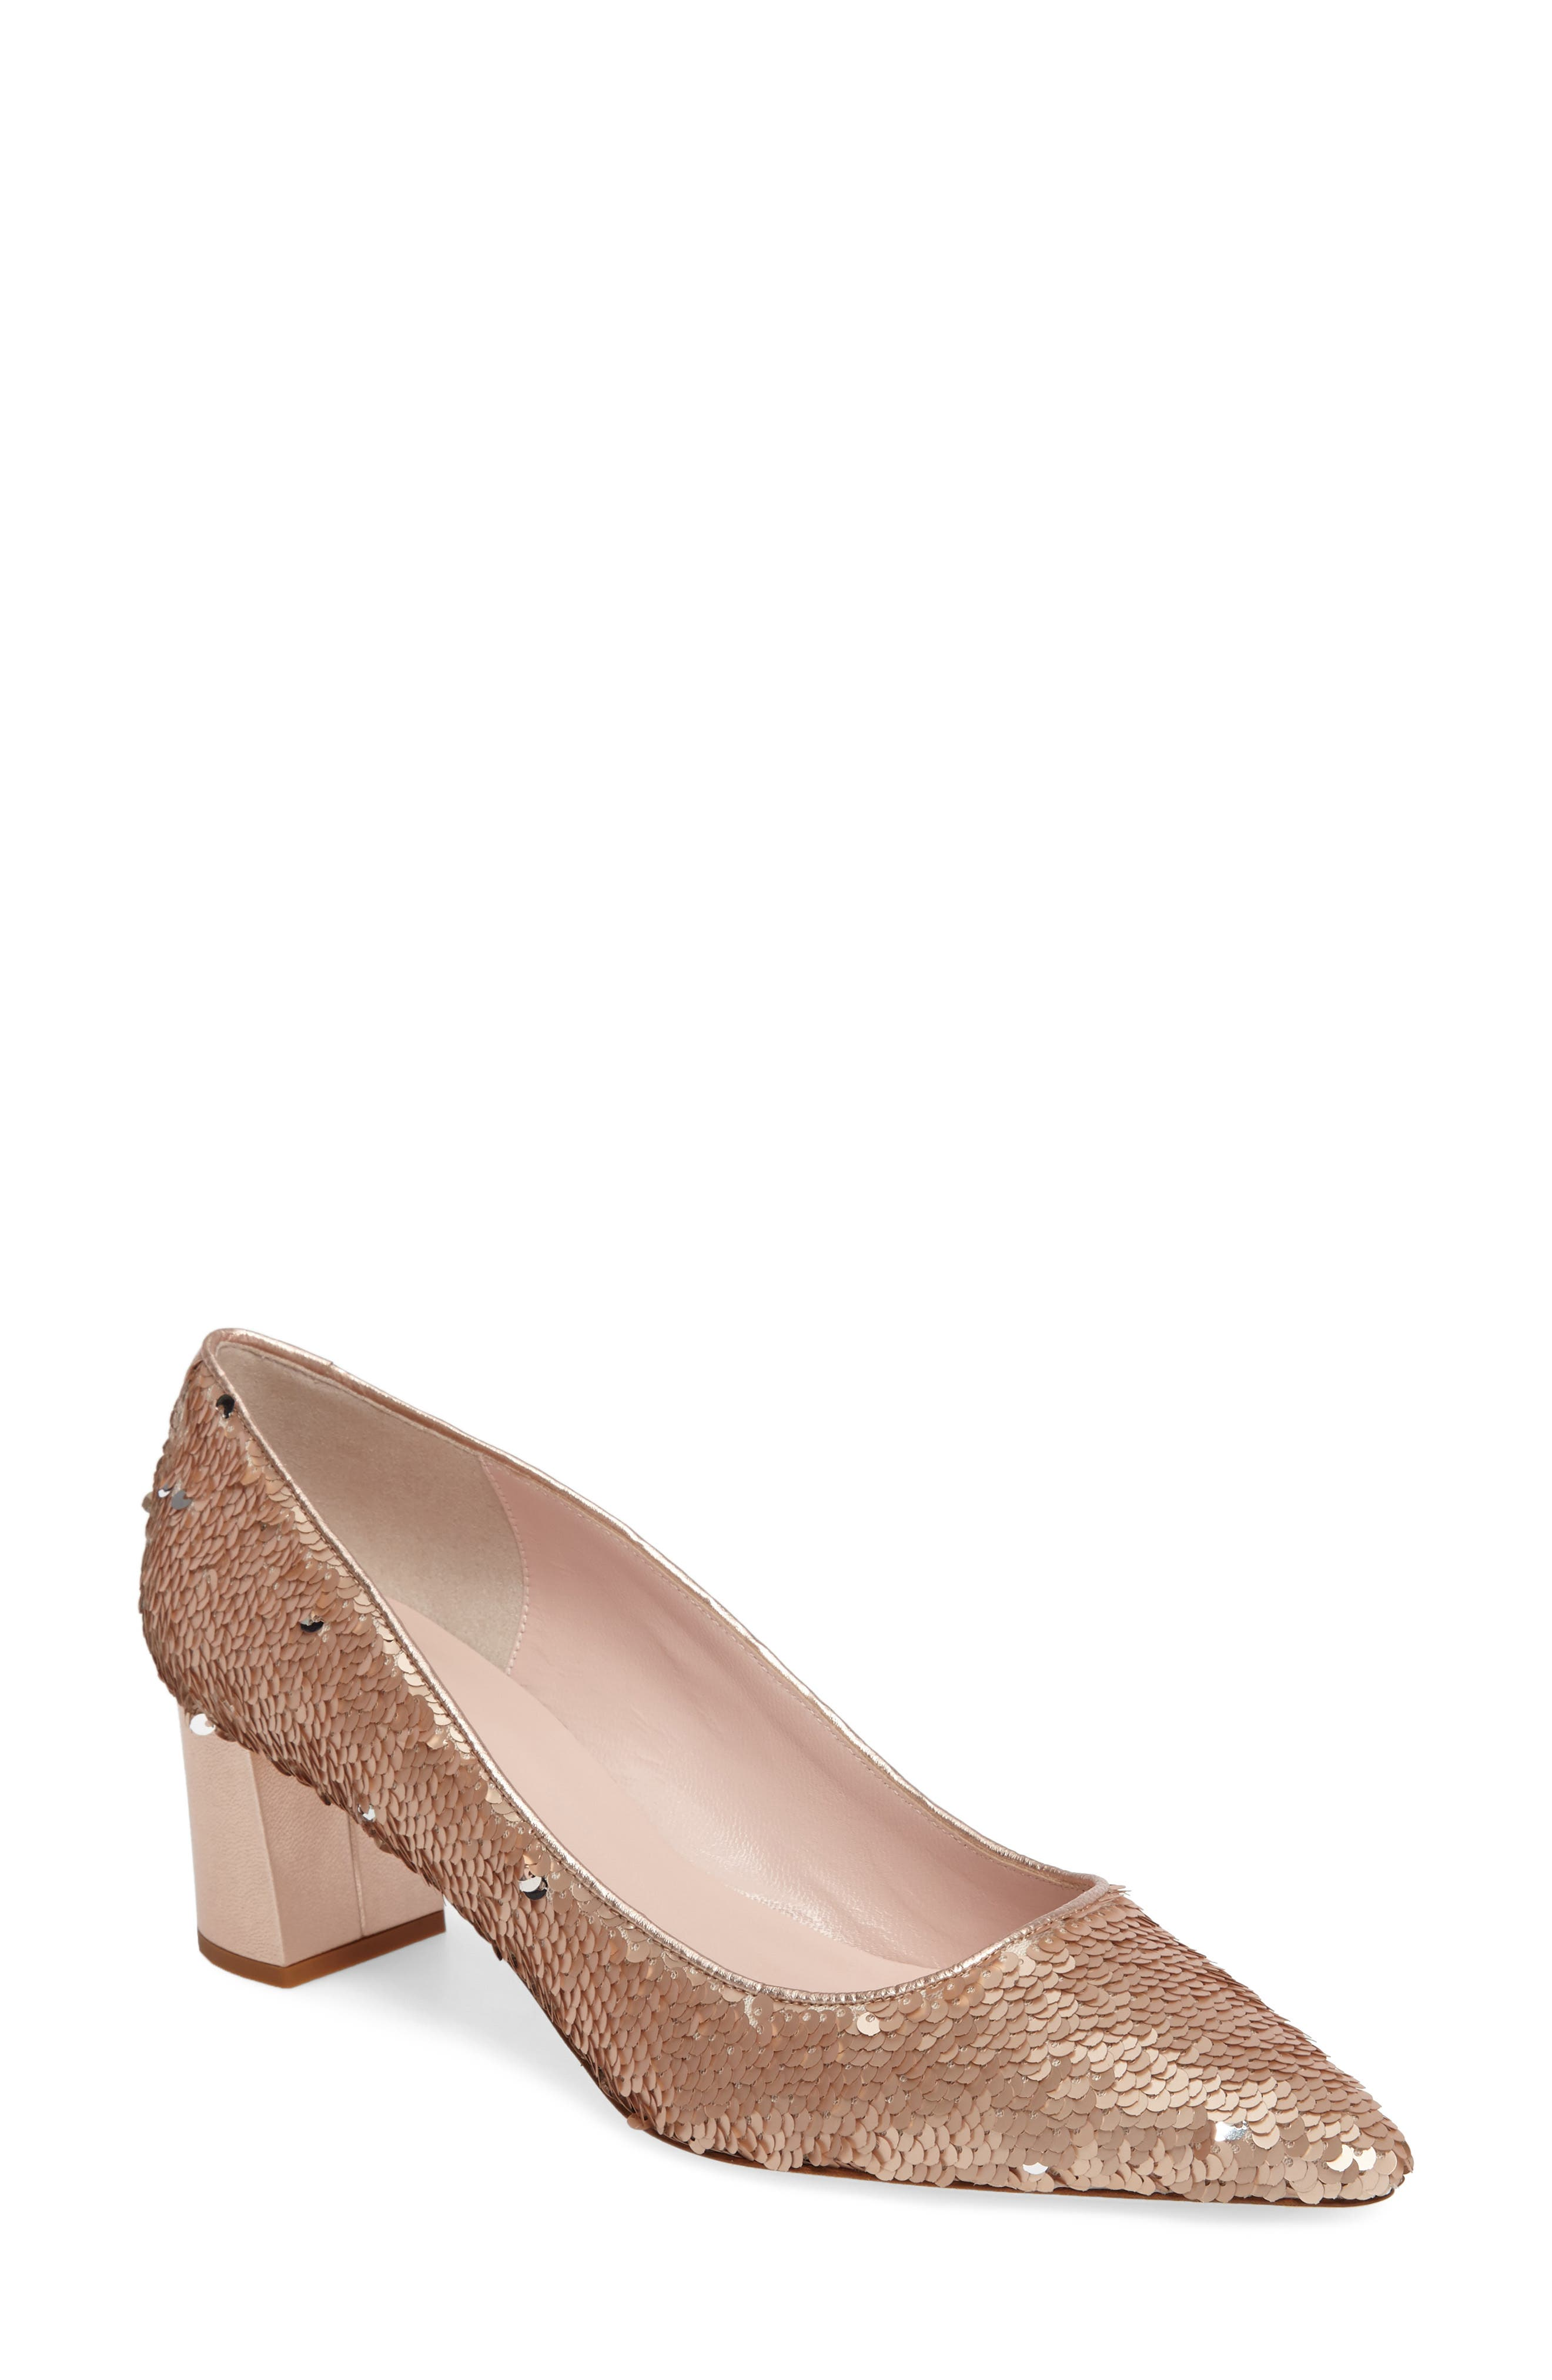 mauna sequin pump,                         Main,                         color, Rose Gold/ Silver